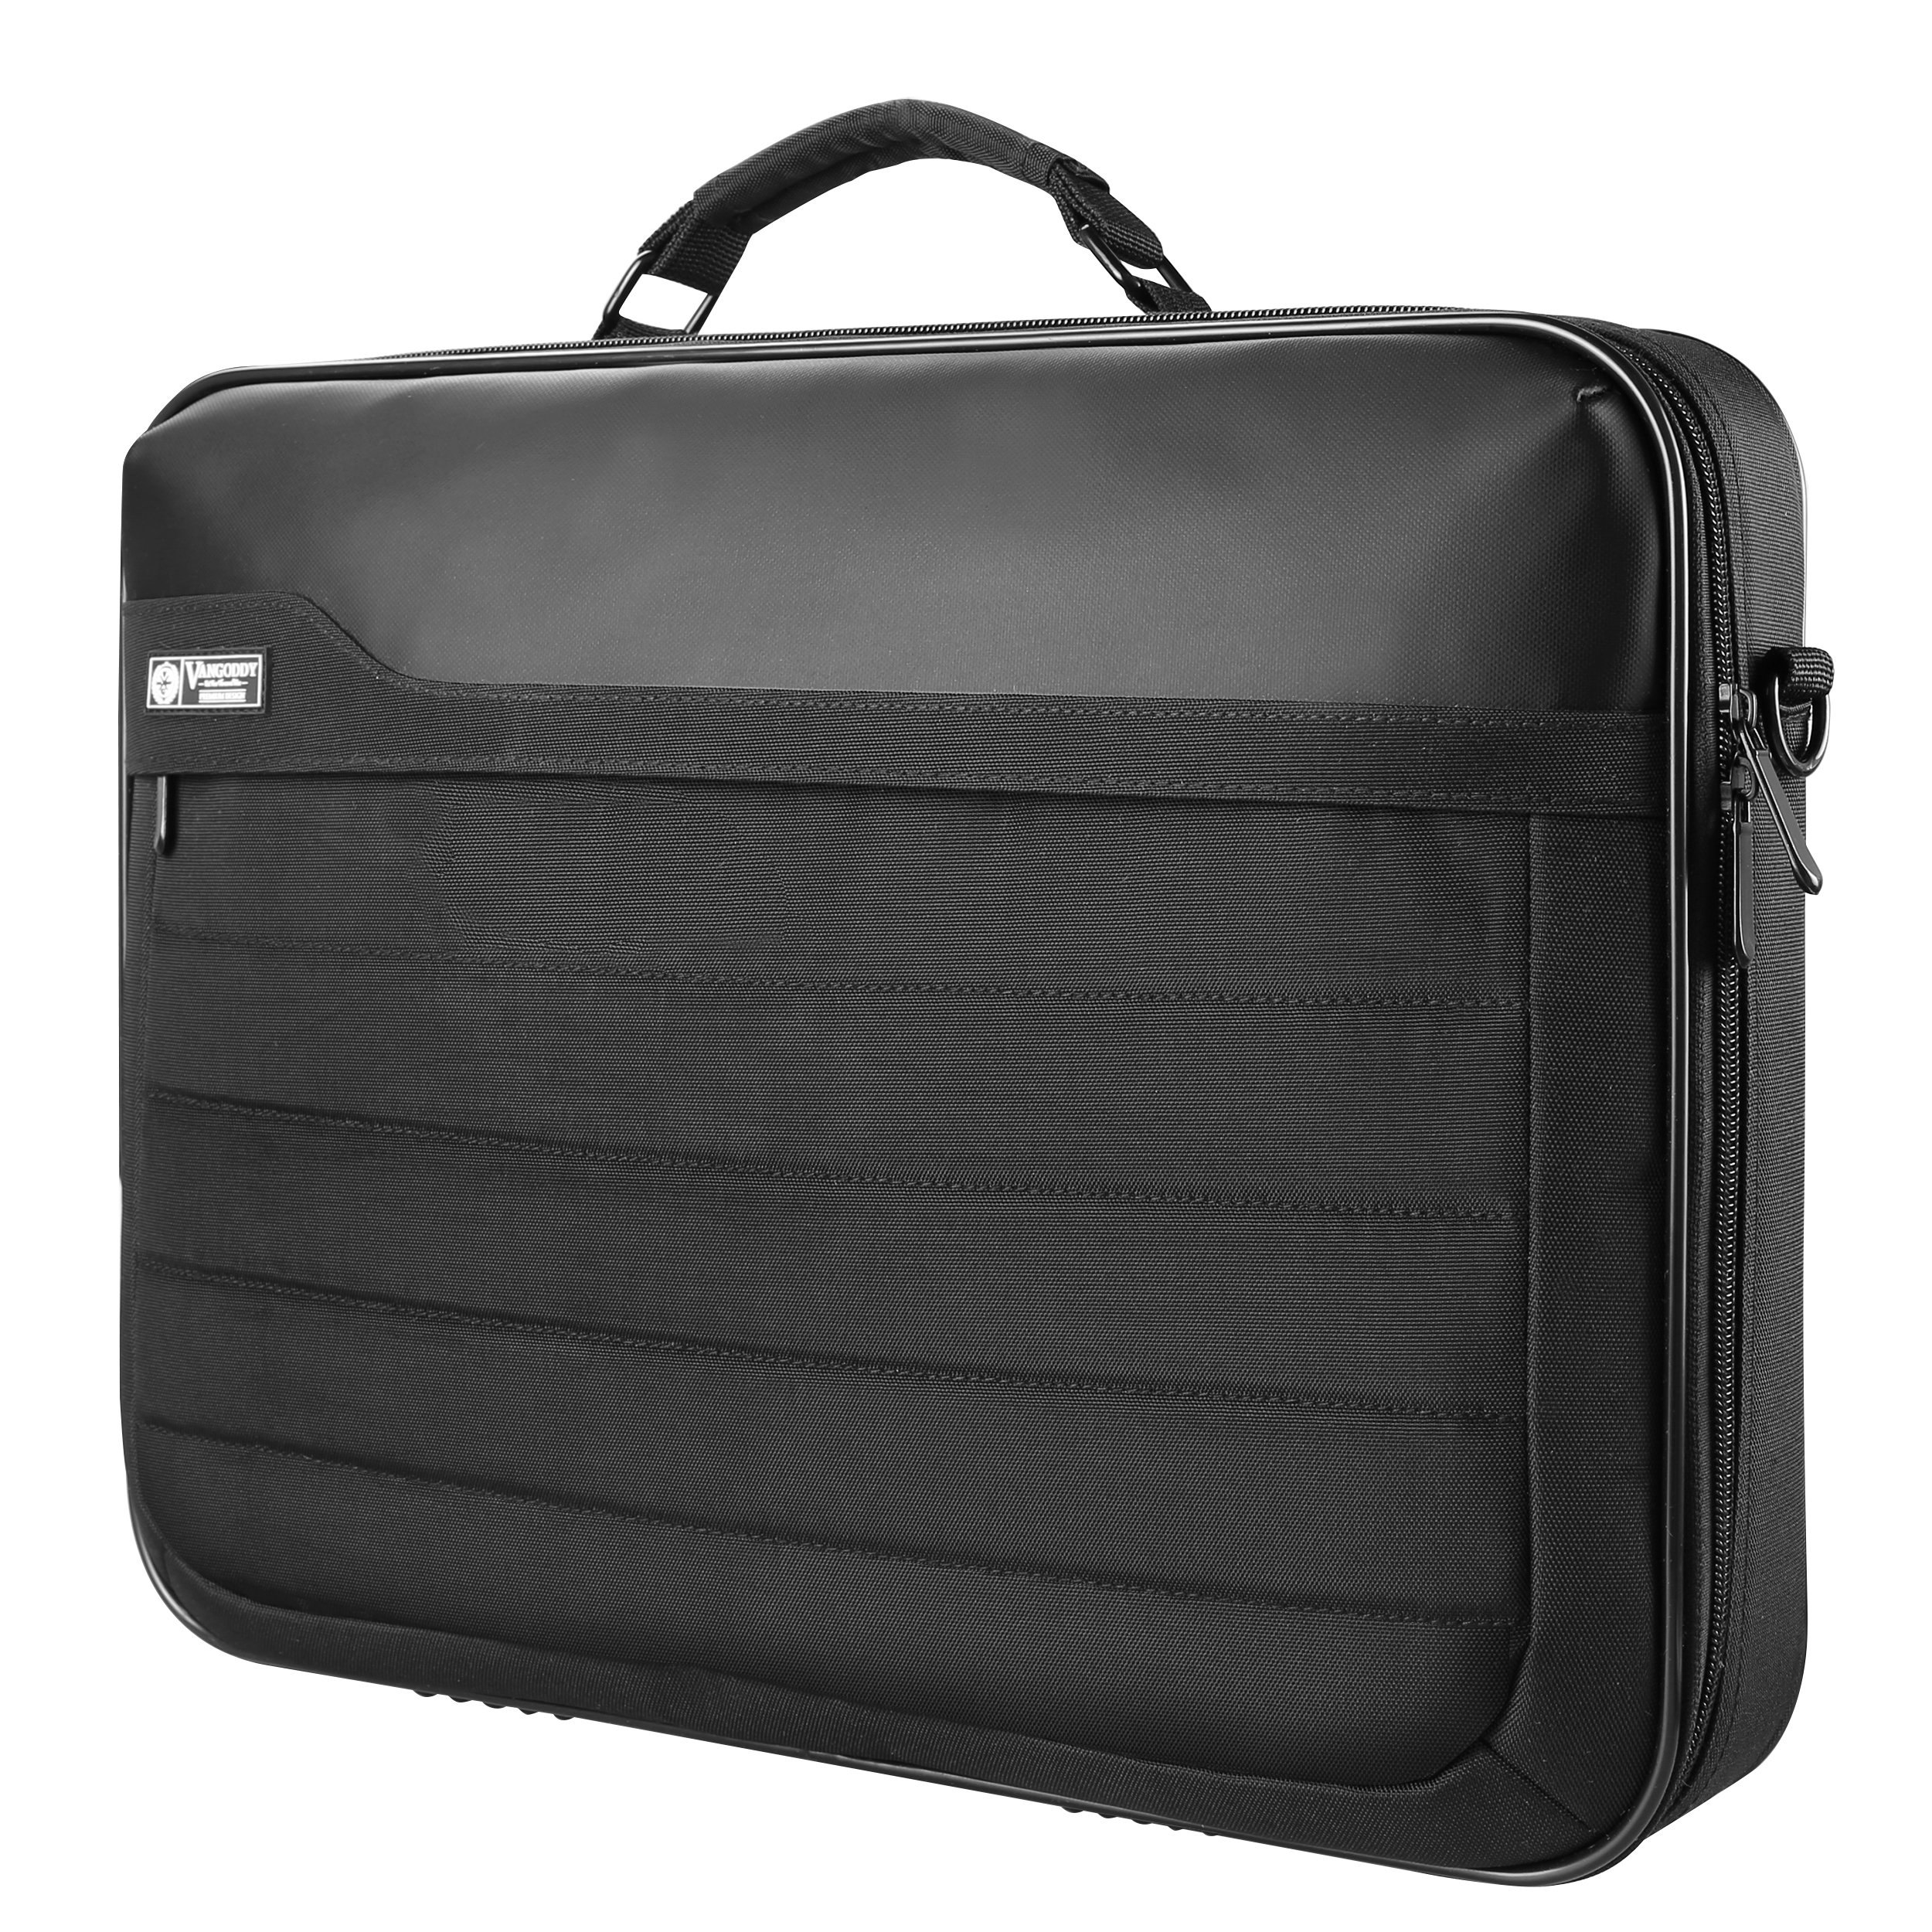 Enzo Lightweight CUBE/Briefcase For Acer Aspire/R/One/Chromebook/11.6'' - 13.3'' Laptops